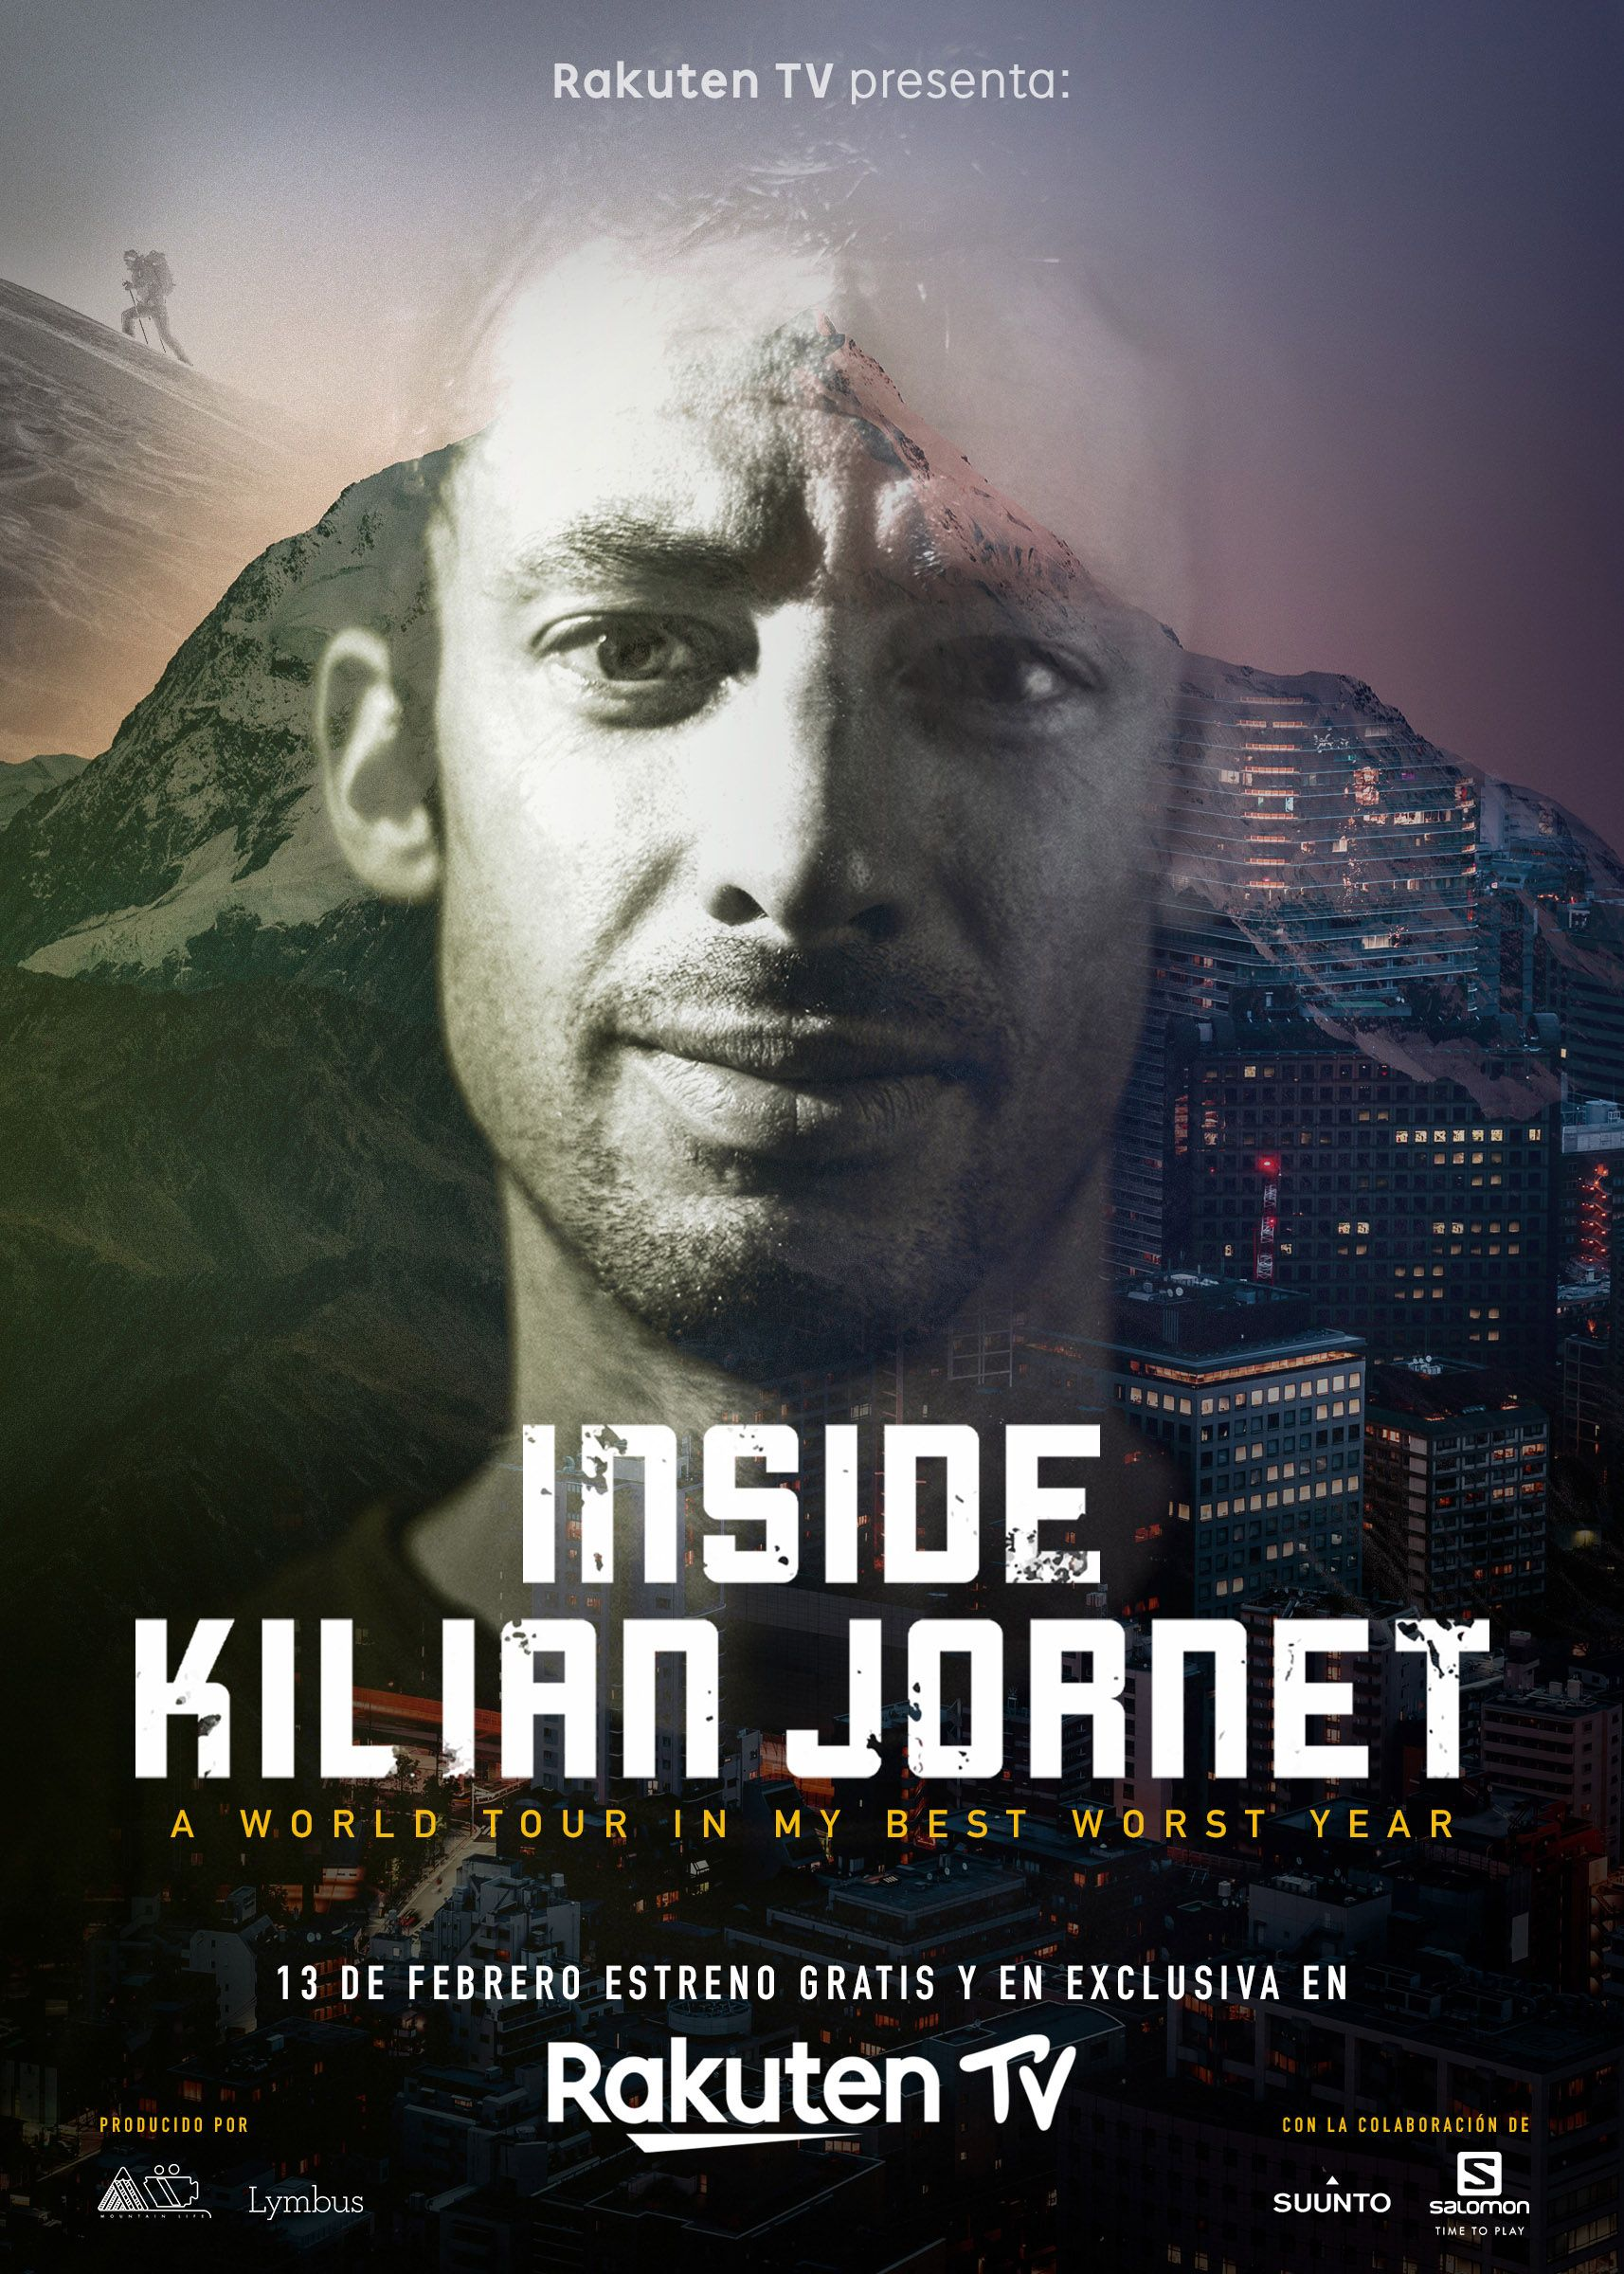 Rakuten TV estrena en exclusiva el documental Inside Kilian Jornet